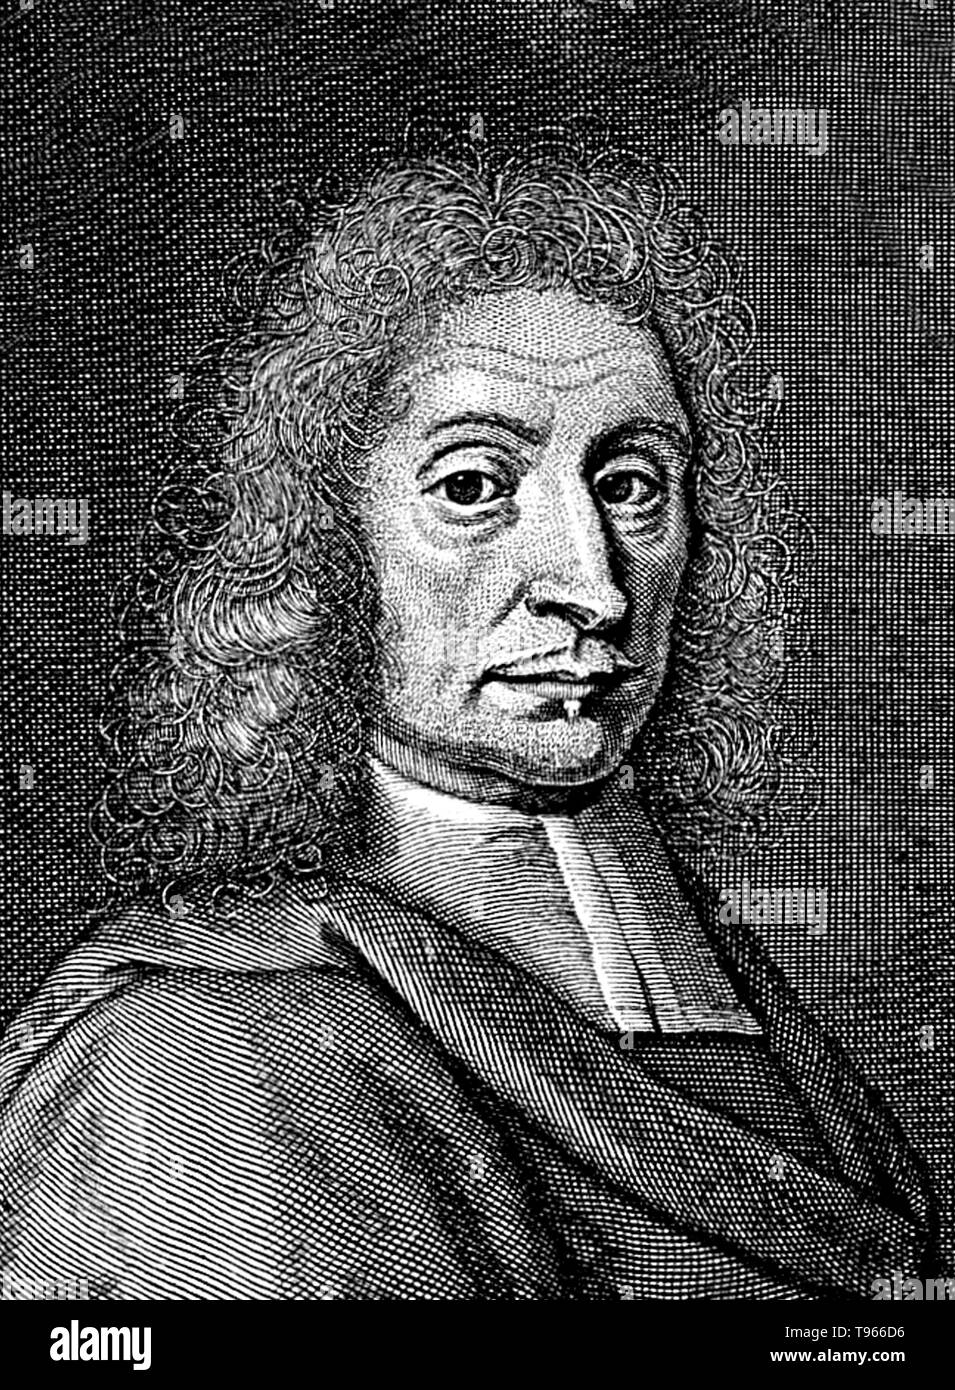 John Ray (November 29, 1627- January 17, 1705) was an English naturalist, sometimes referred to as the father of English natural history. He published important works on botany, zoology, and natural theology. His classification of plants in his Historia Plantarum, was an important step towards modern taxonomy. Ray rejected the system of dichotomous division by which species were classified according to a pre-conceived, either/or type system, and instead classified plants according to similarities and differences that emerged from observation. Thus he advanced scientific empiricism against the  - Stock Image